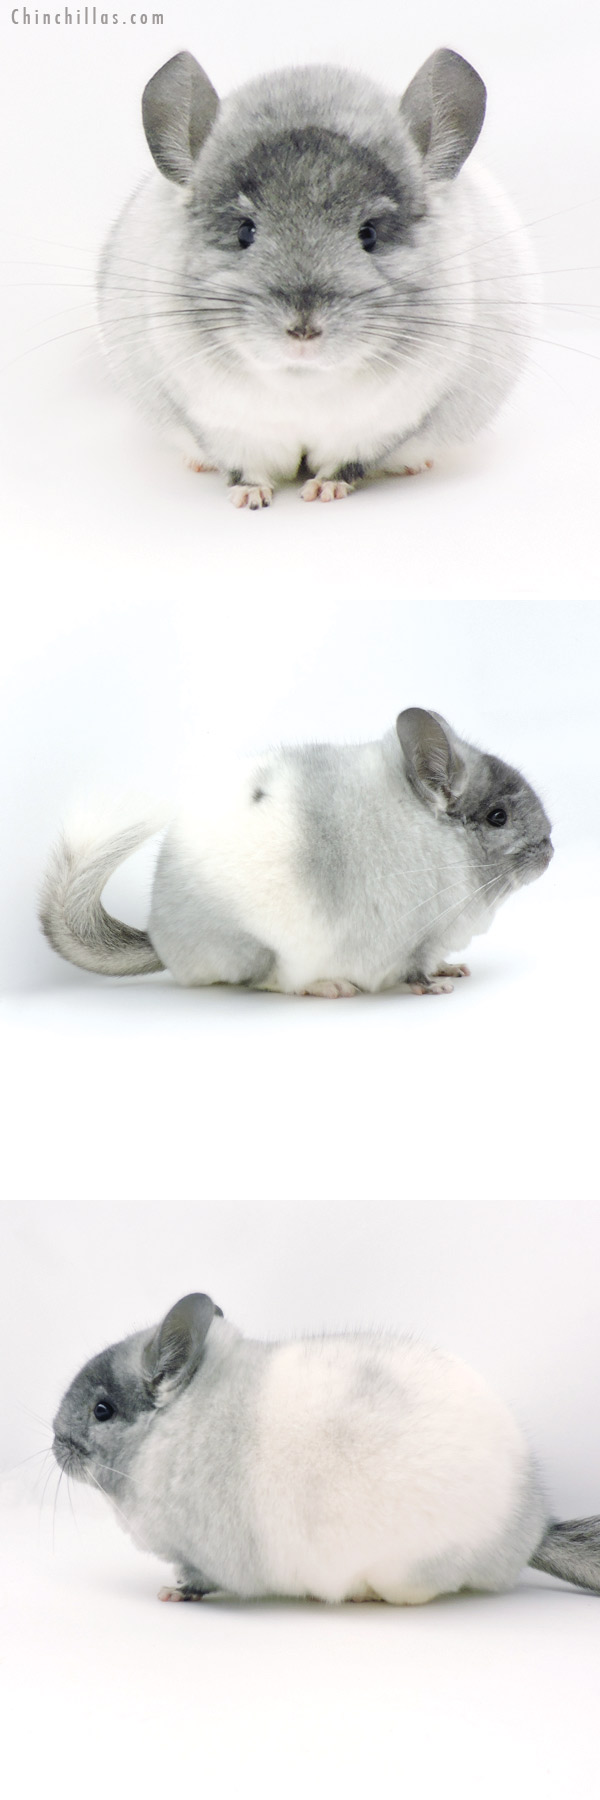 19321 Blocky Brevi Type Herd Improvement Quality TOV White Male Chinchilla